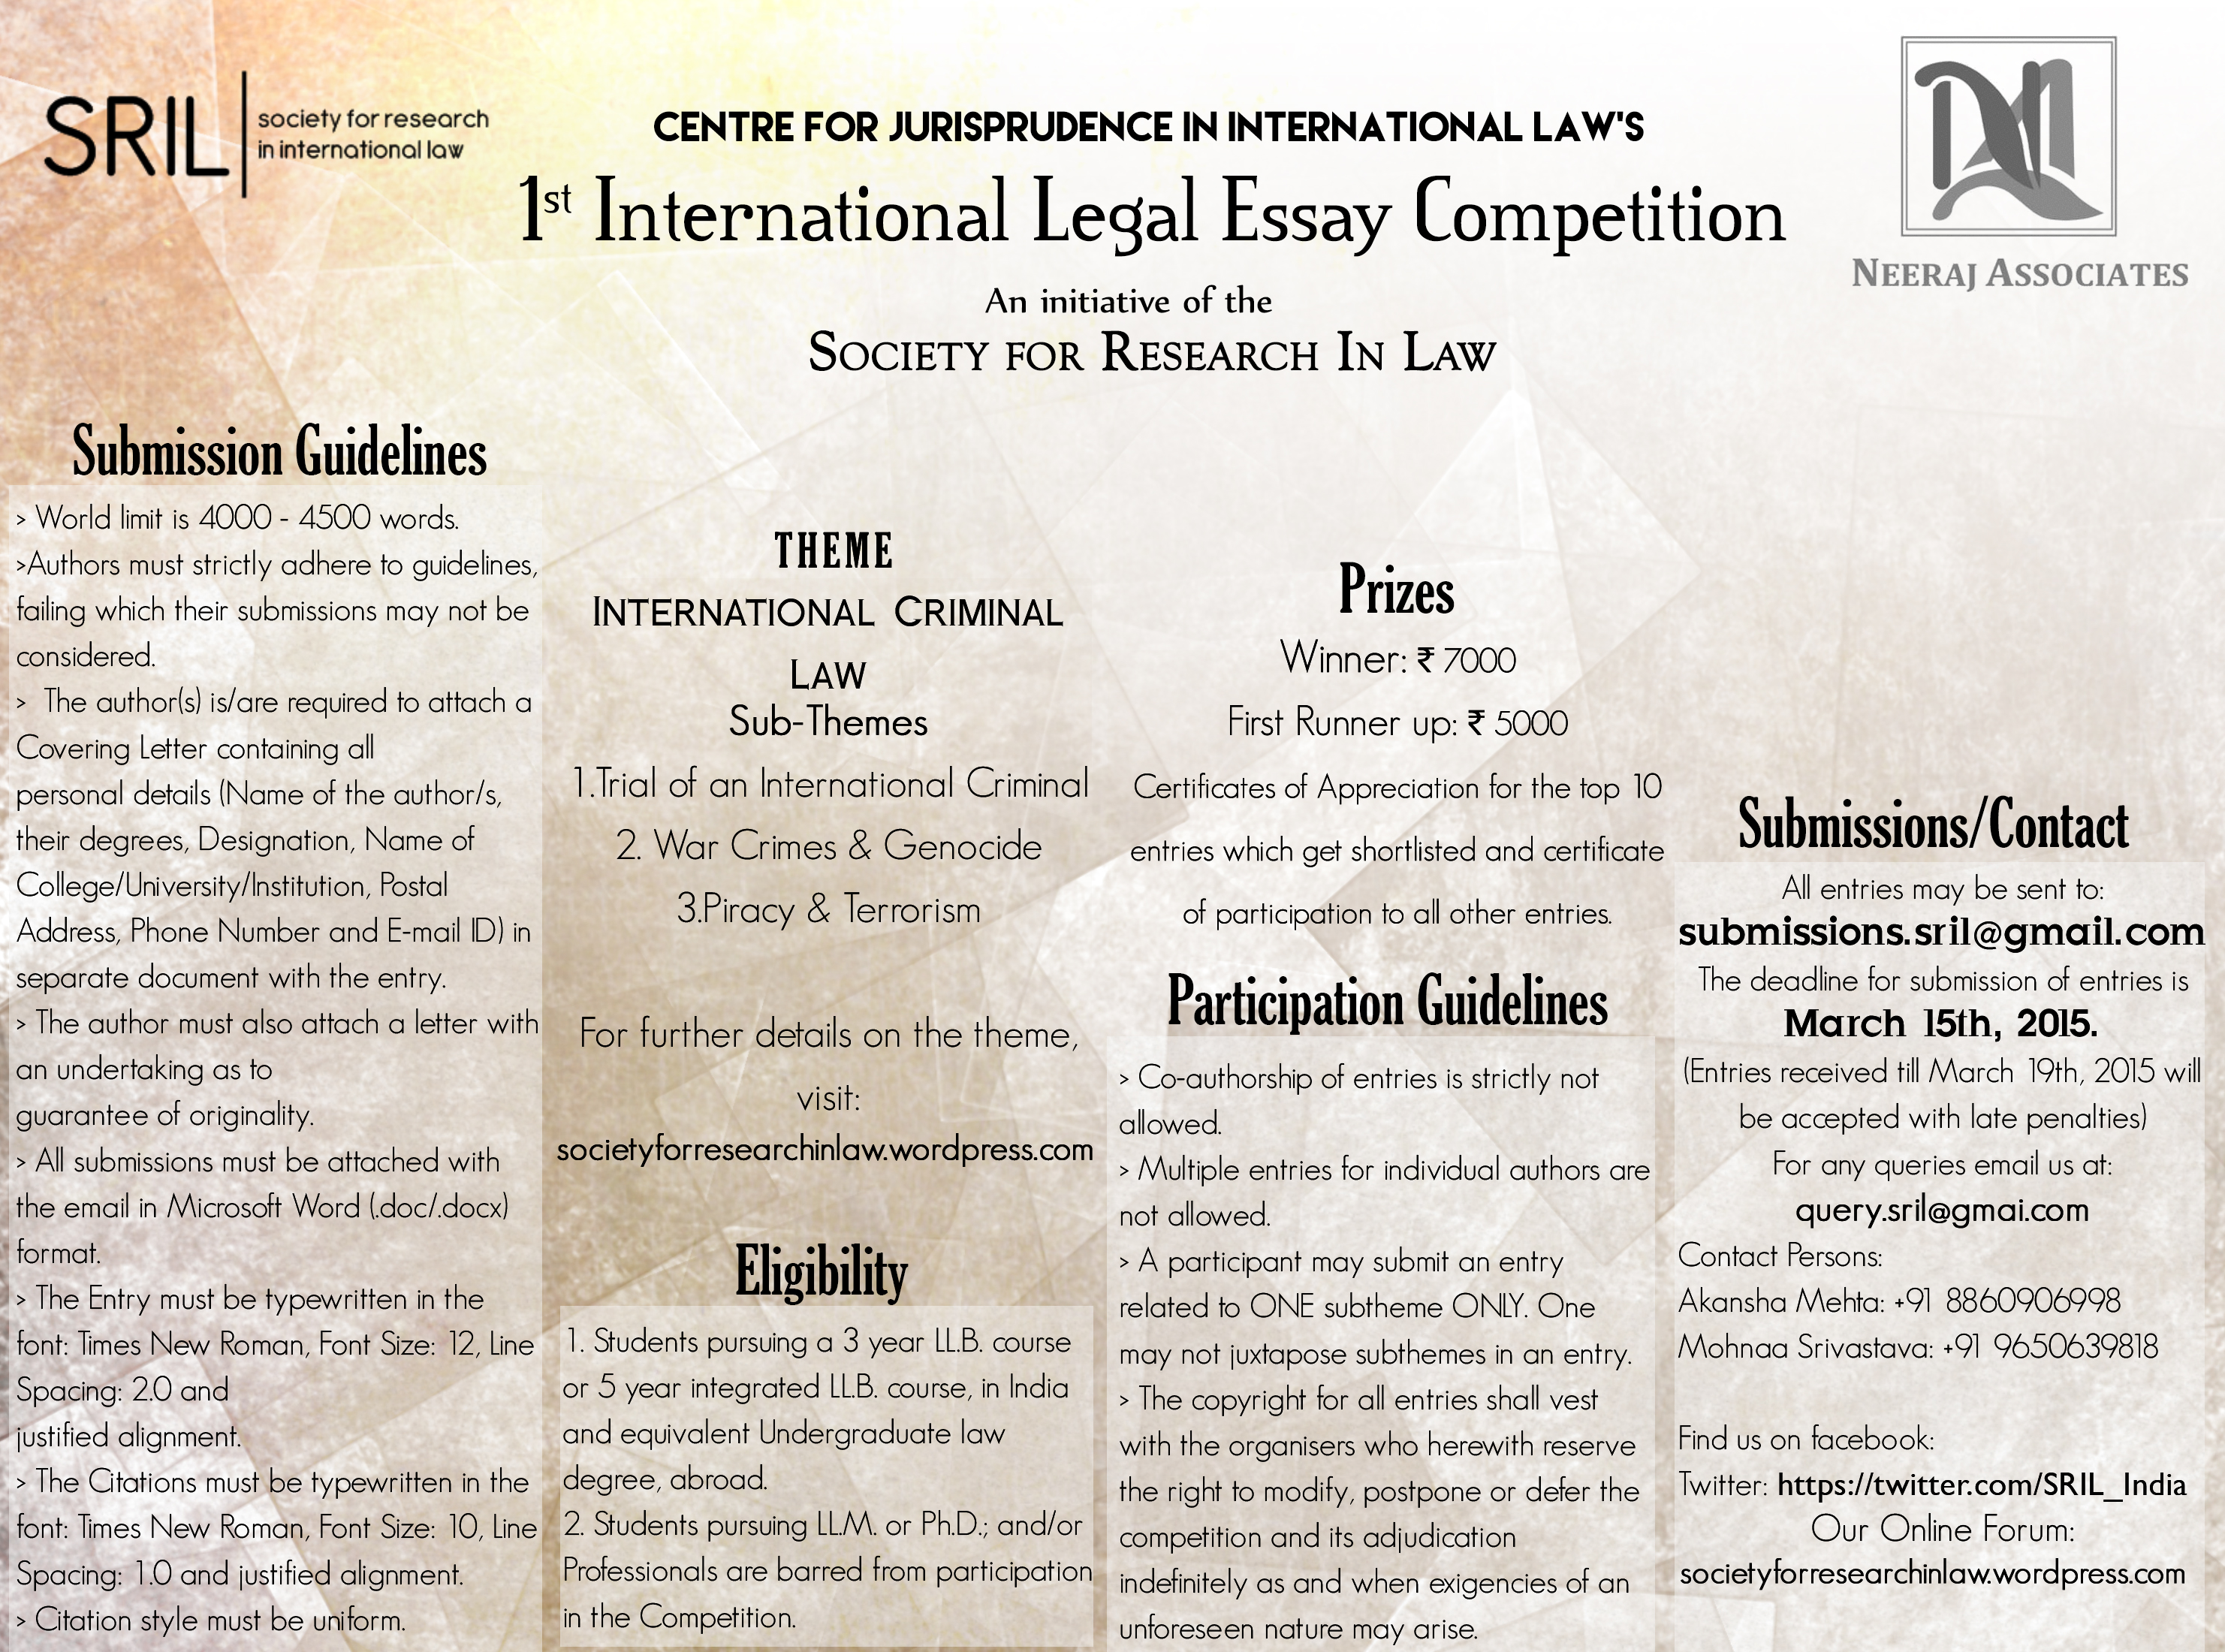 law essays co essay on international criminal law 2015 society for research in law